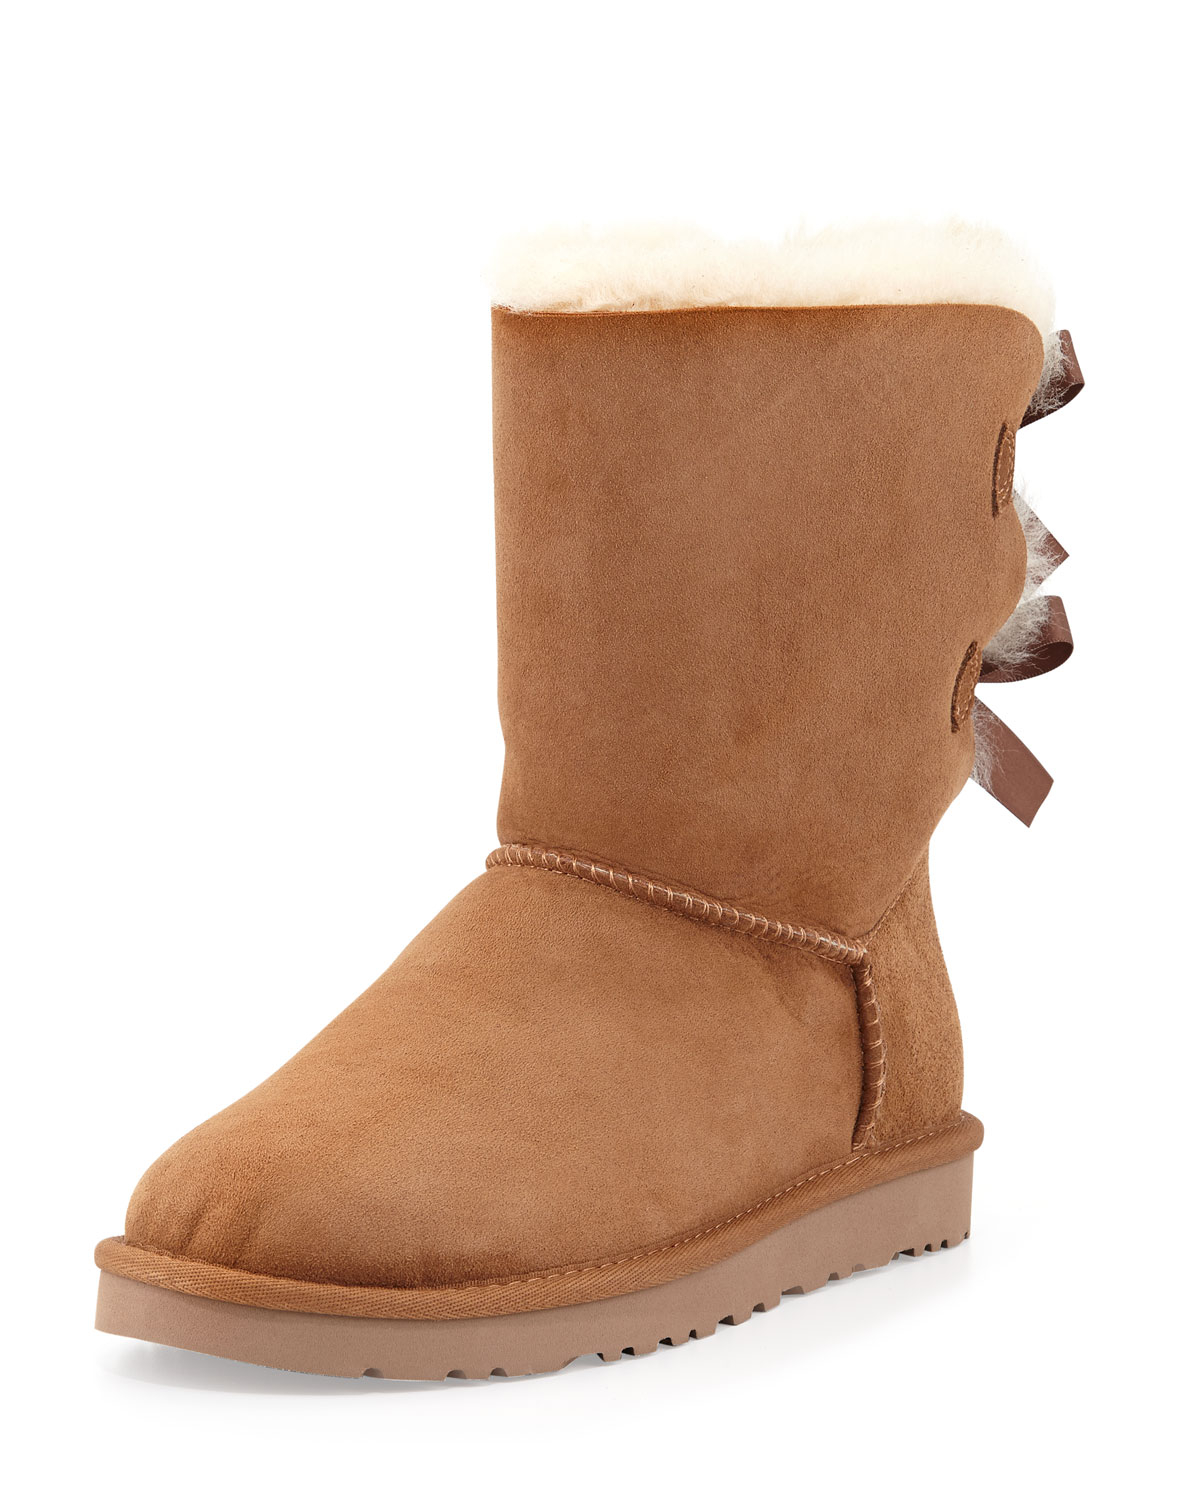 ugg australia bailey bow back boot in brown